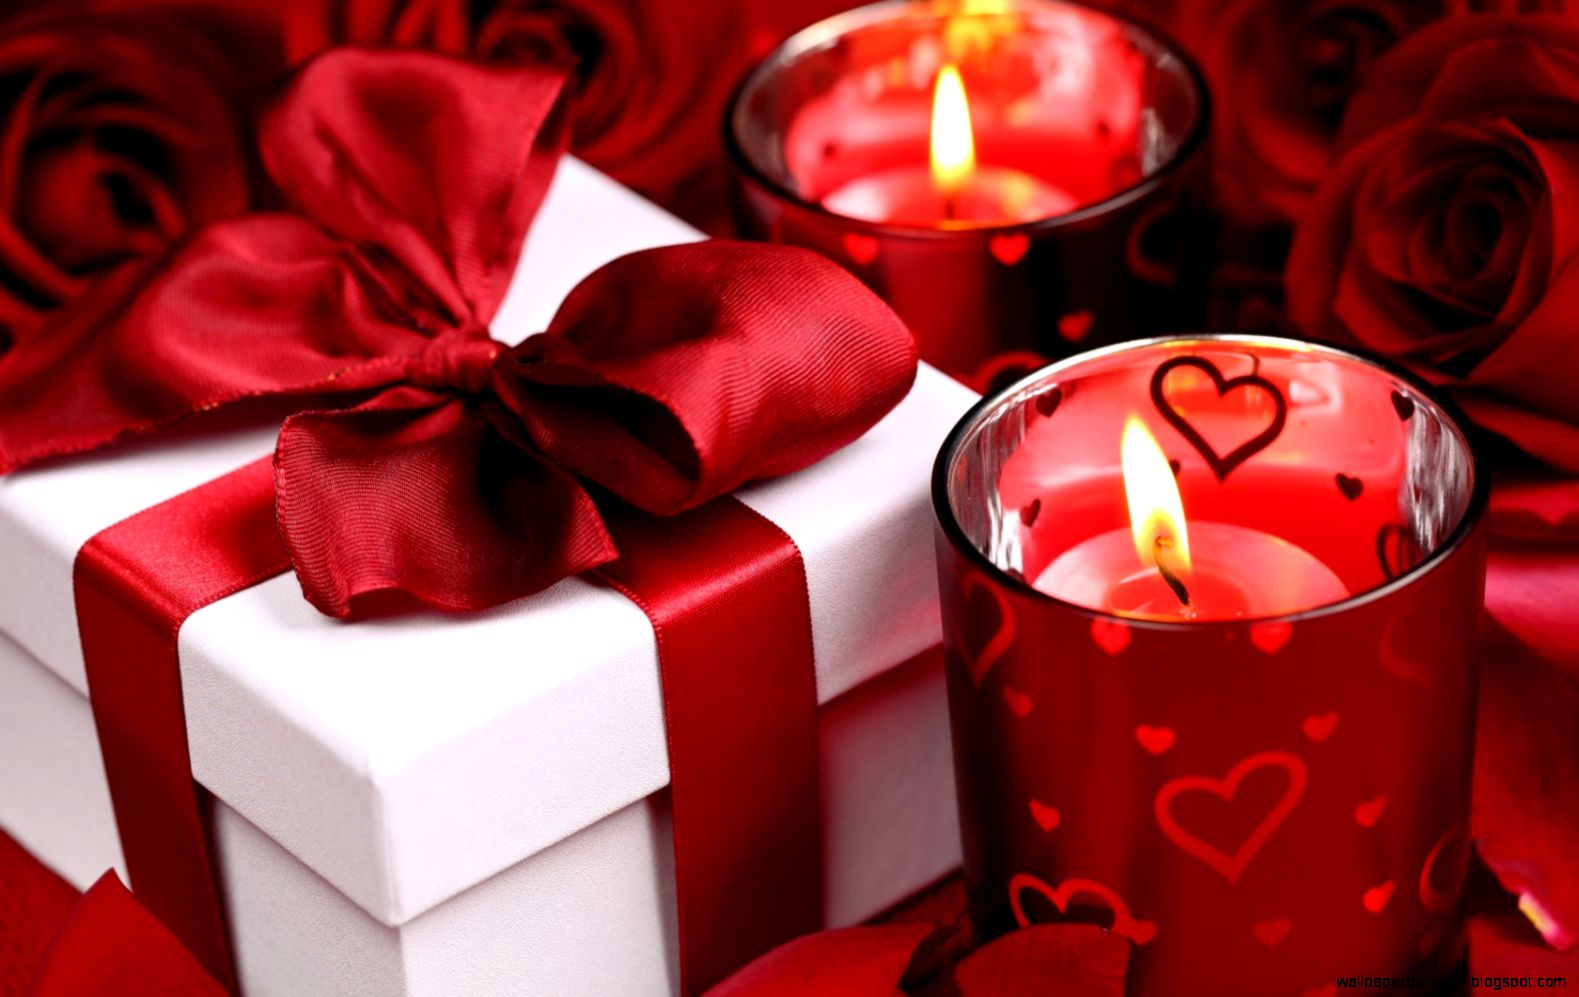 Love Candle Hd Wallpapers | Wallpaper Gallery for Mood Candle Fire Flame Hearts Wallpapers  545xkb